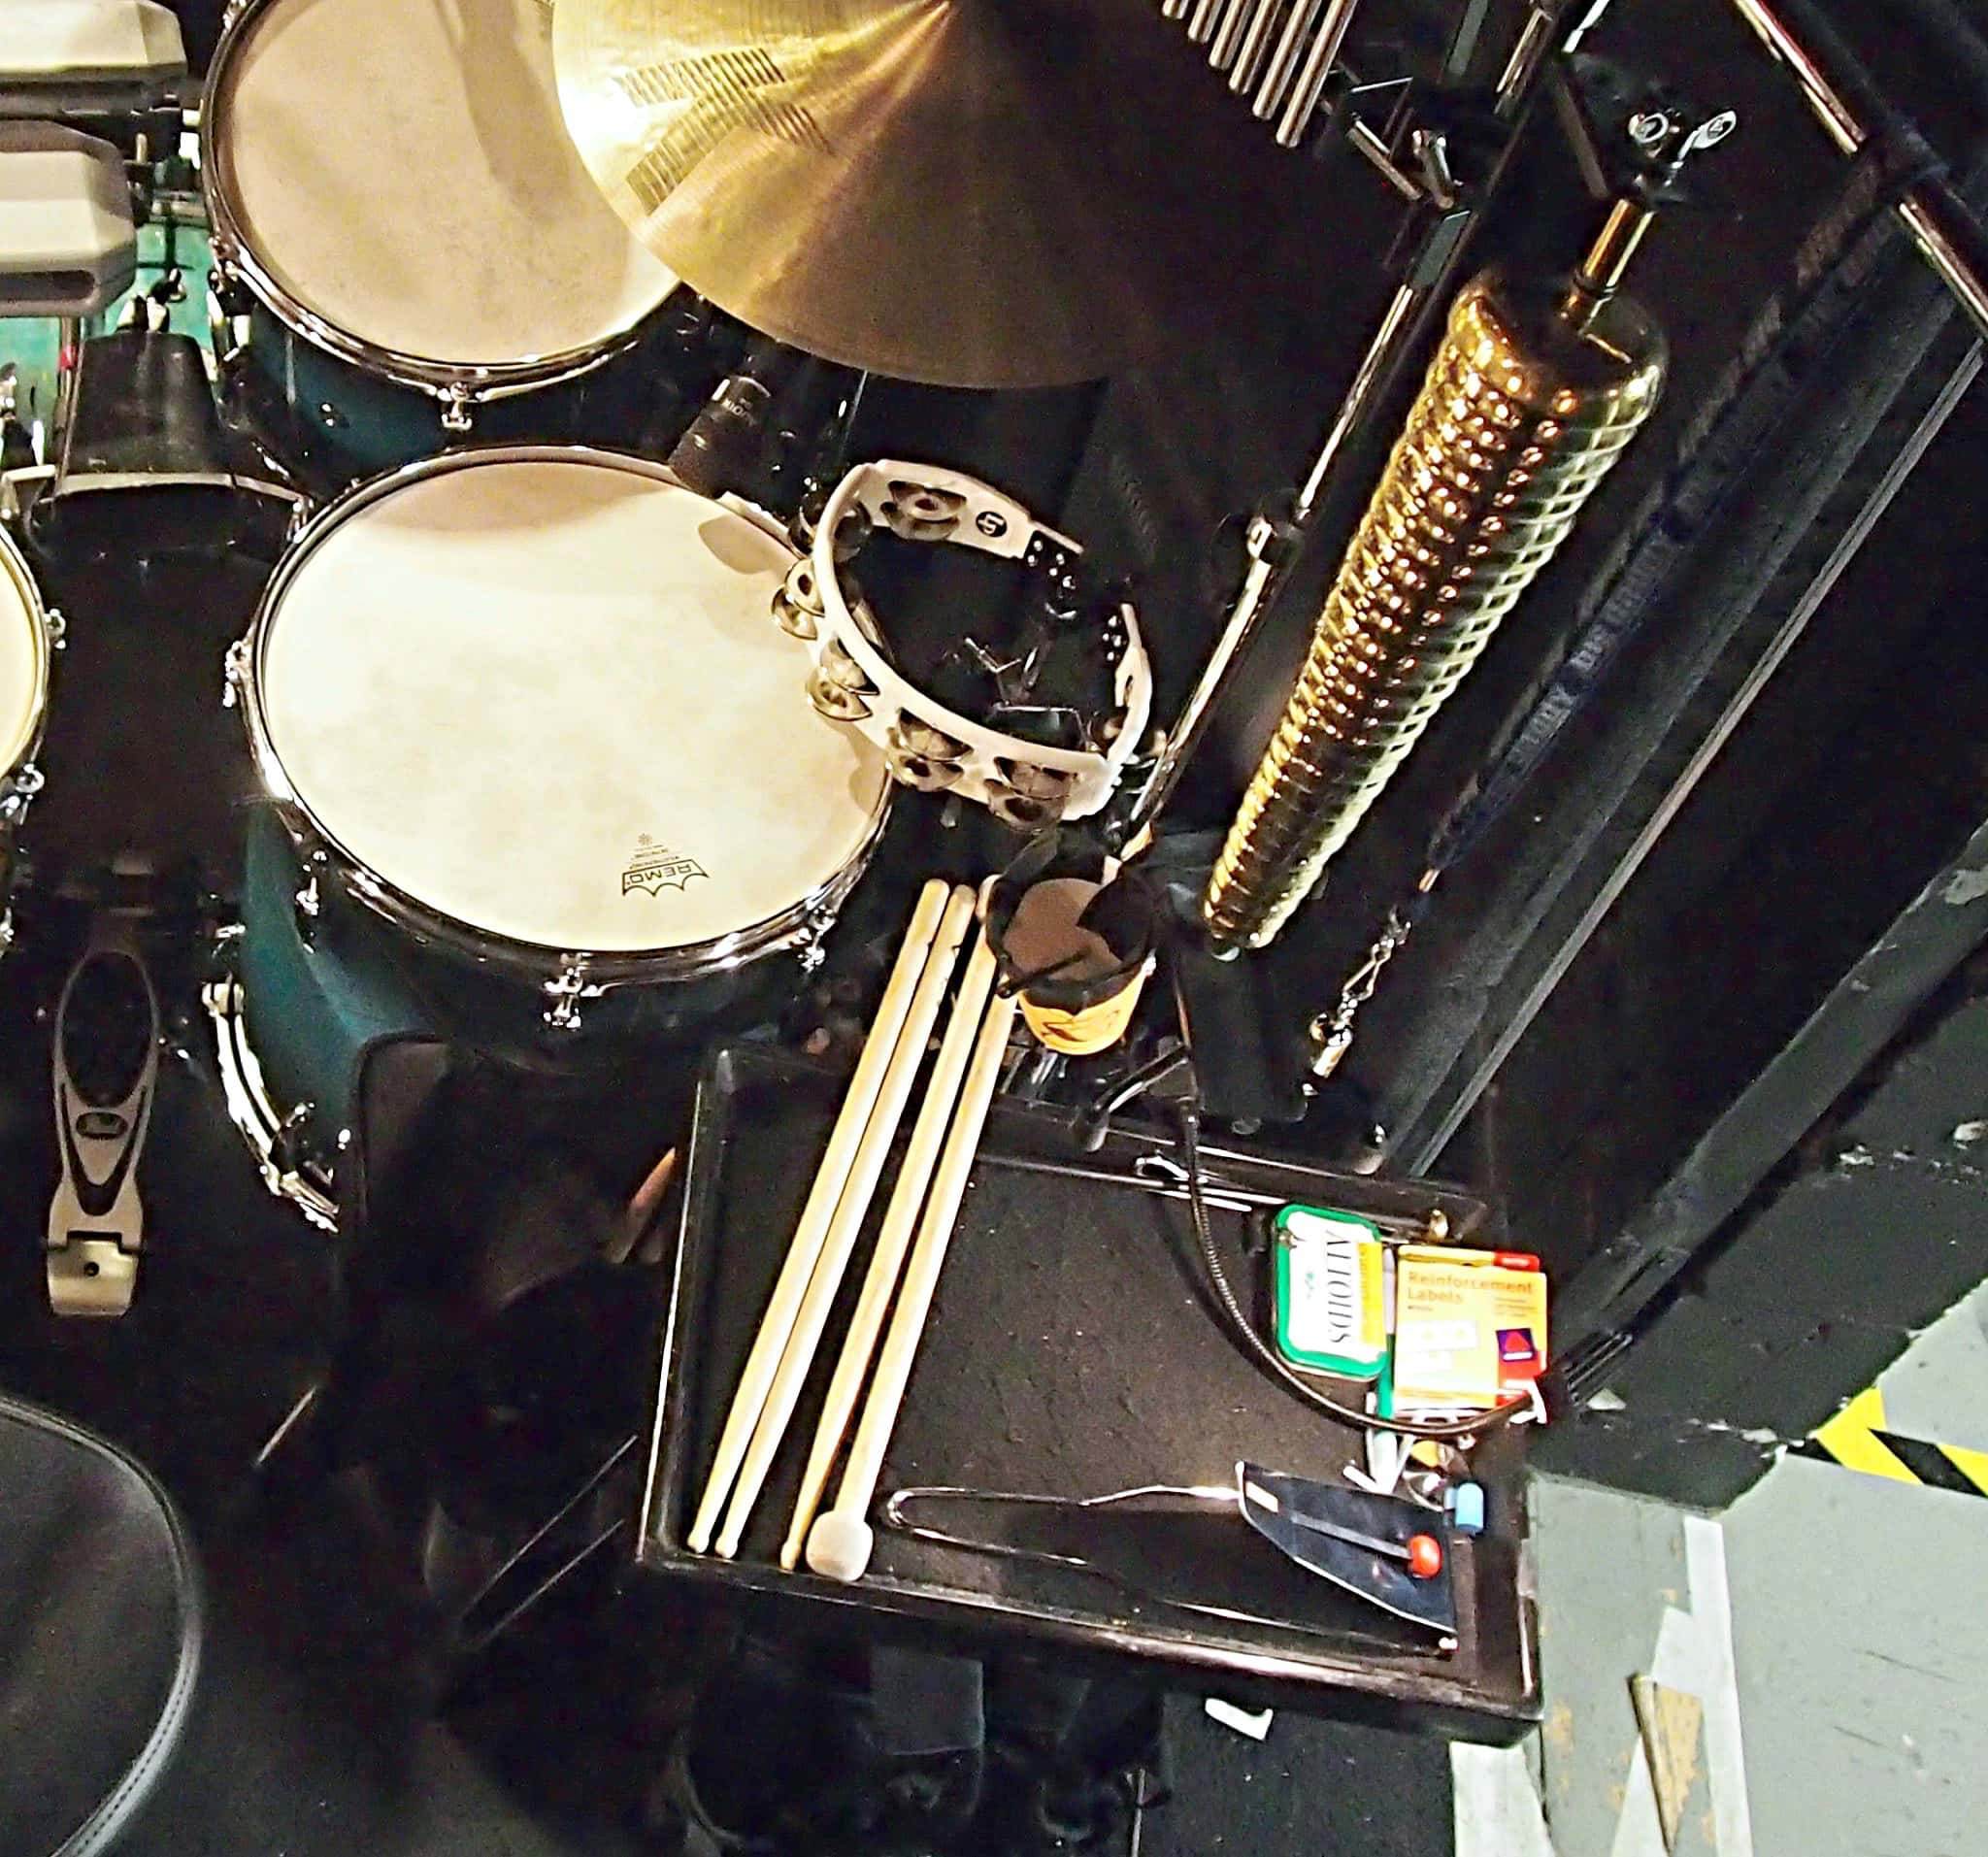 Rich Rosenzweig's drum set setup for the Broadway production of Cinderella at the Broadway Theatre.